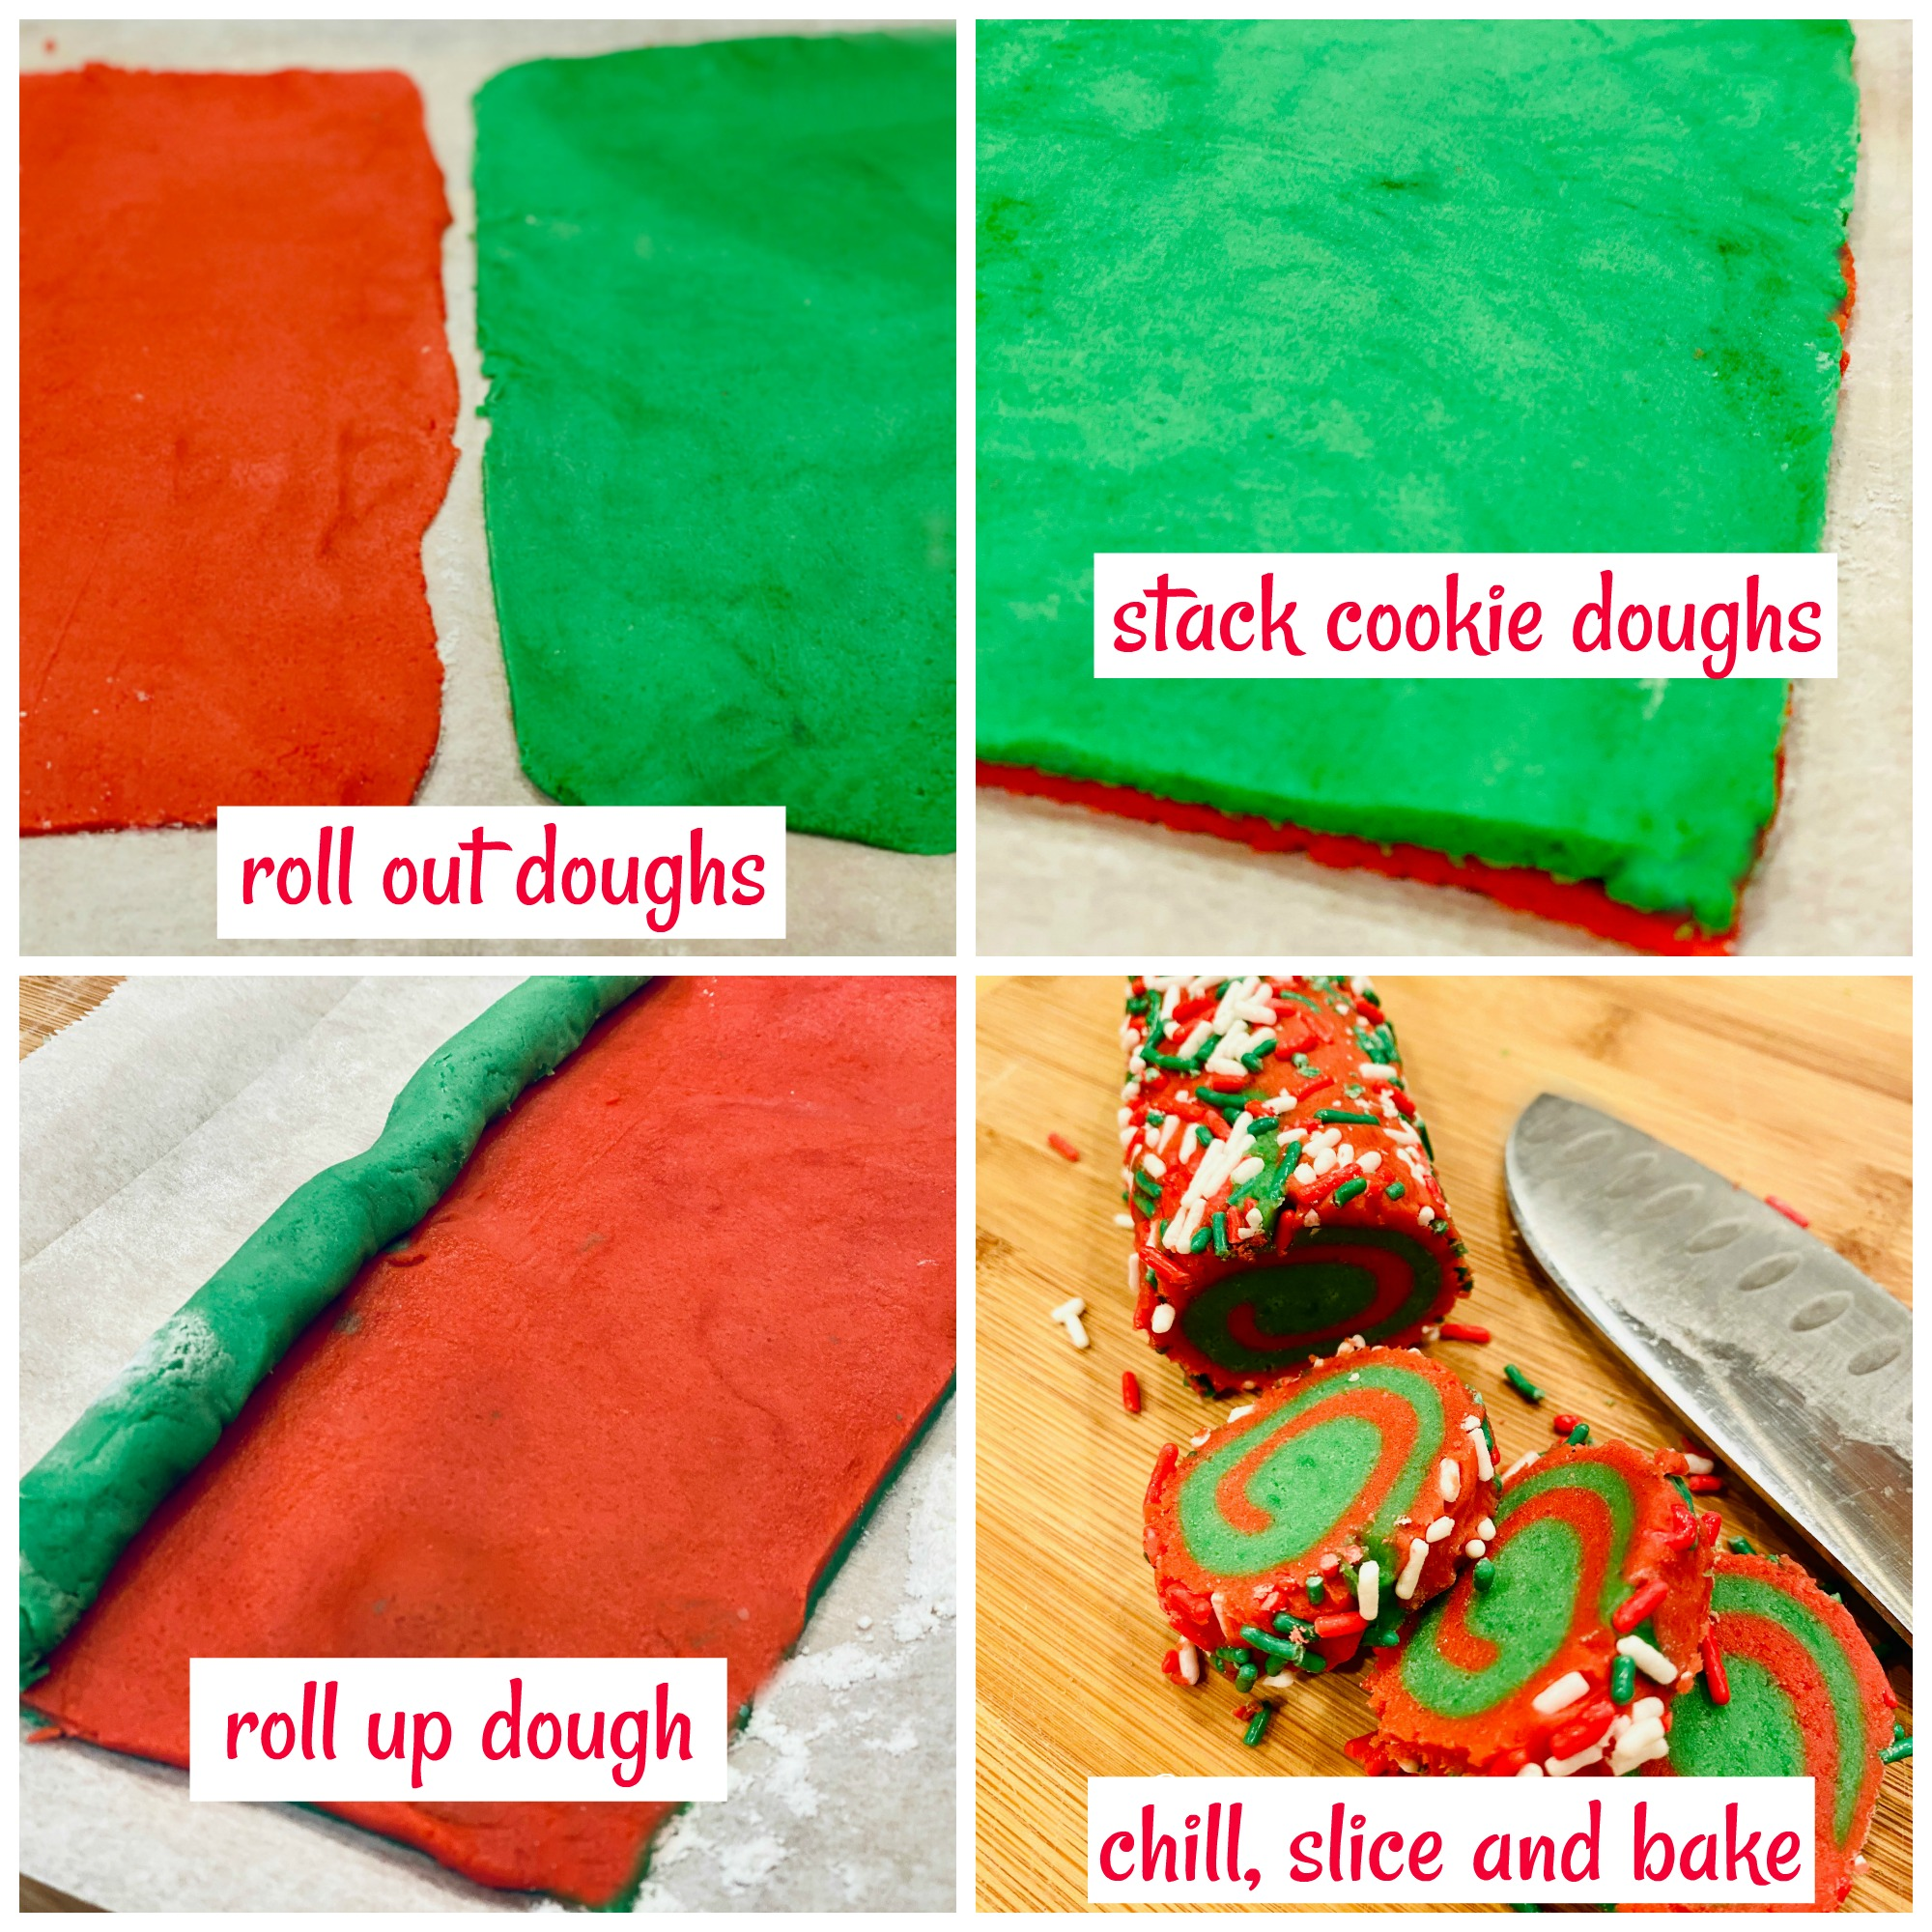 steps on how to make pinwheel cookies